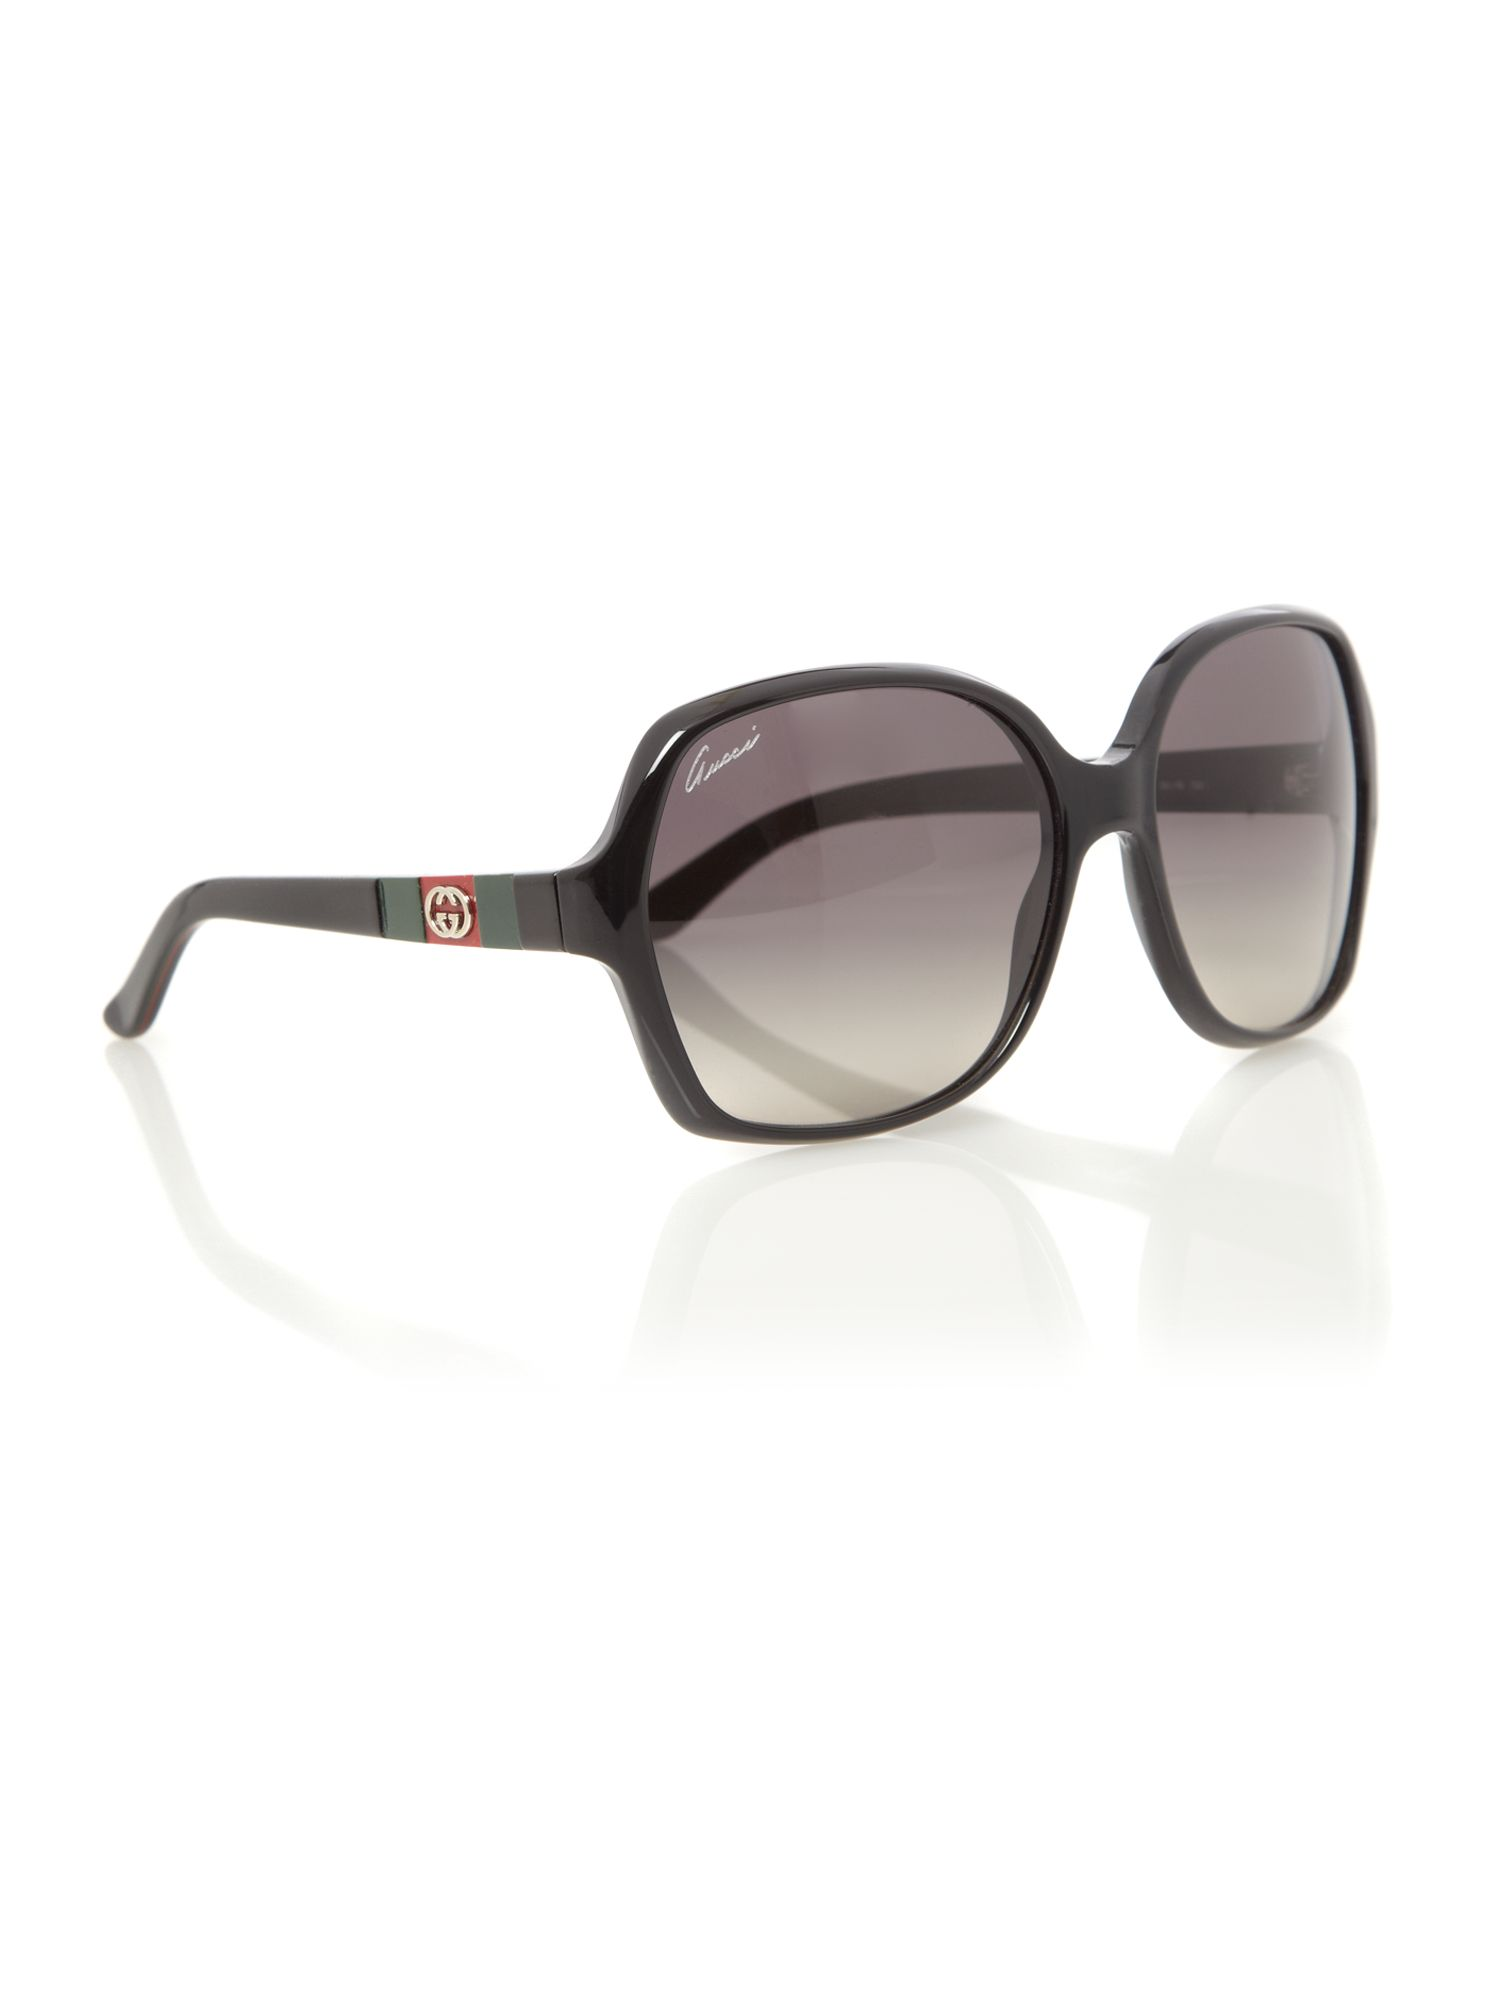 Ladies GG3538/S Black Sunglasses